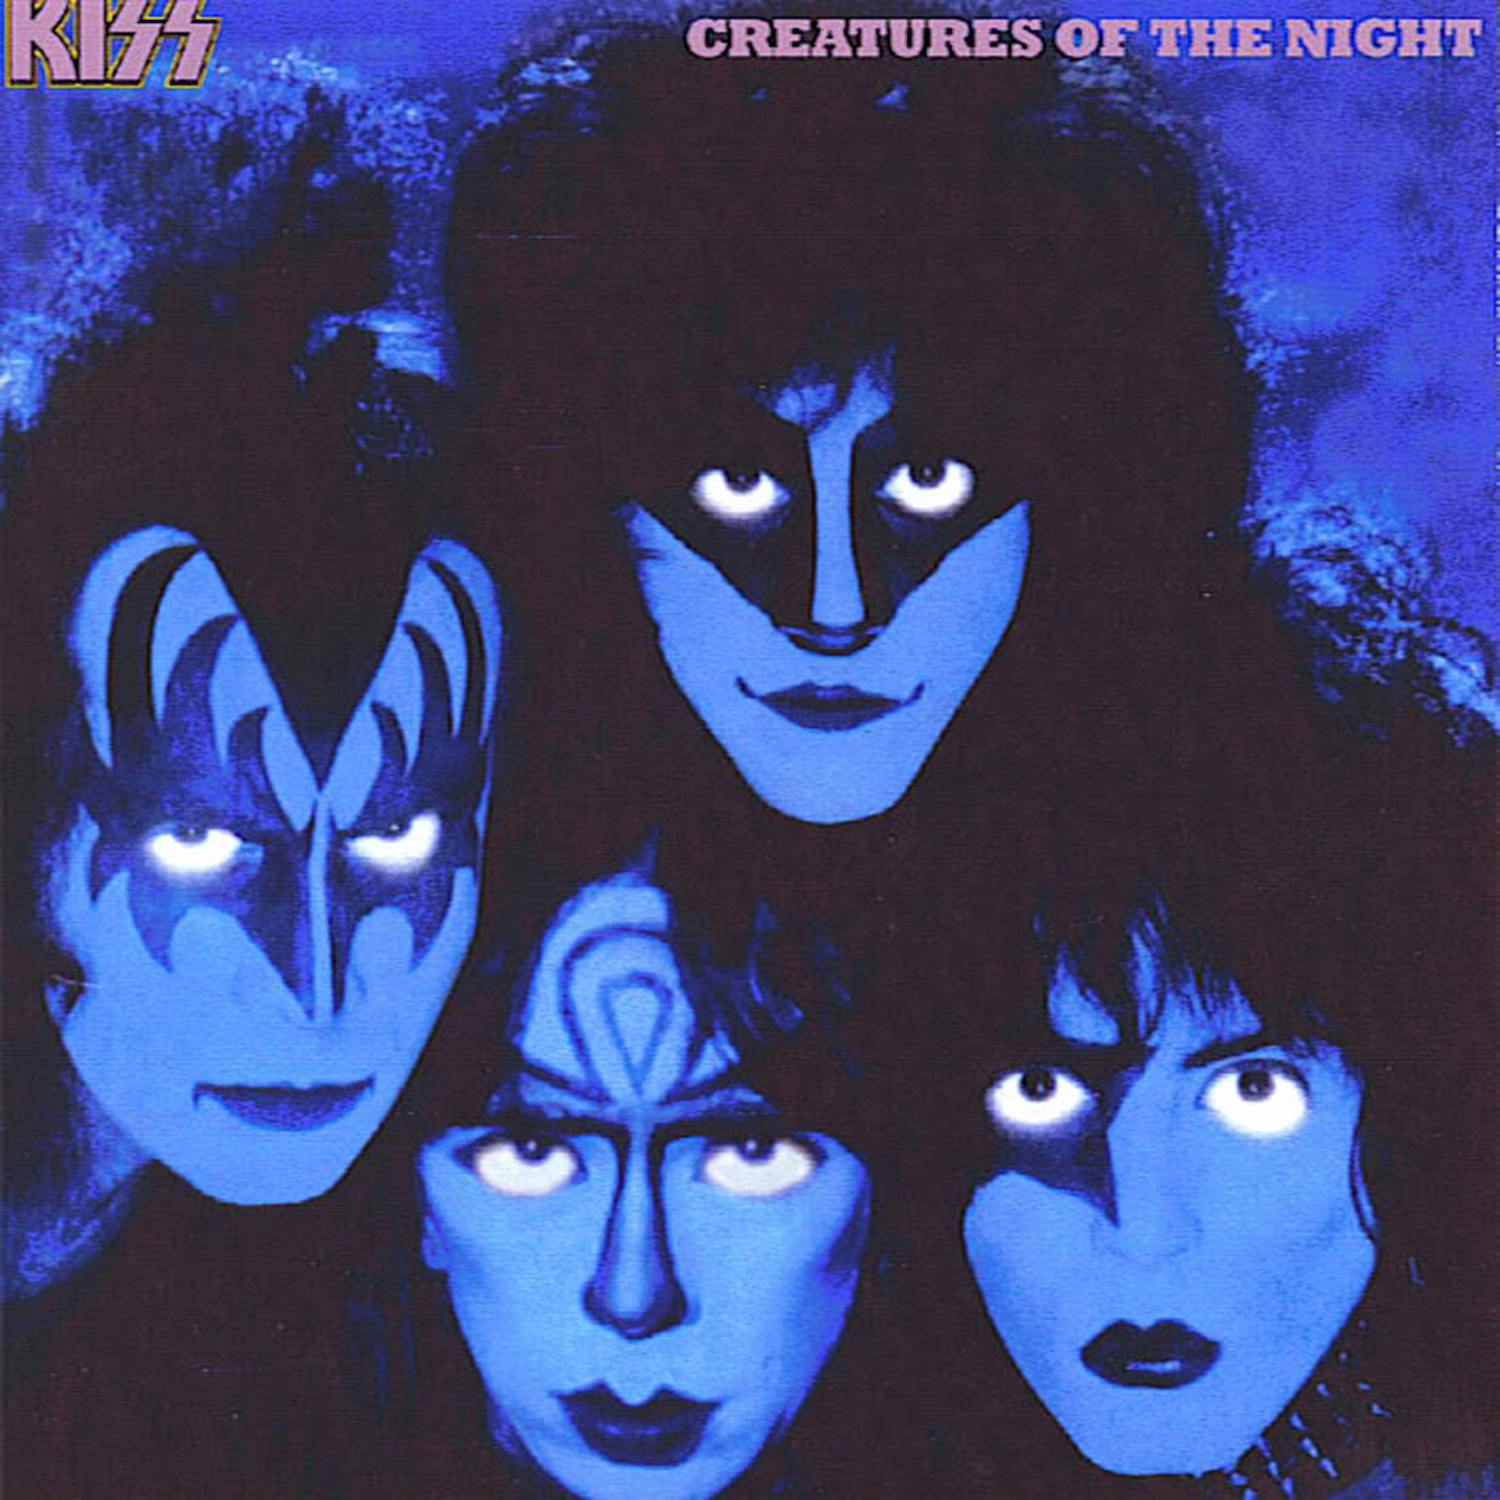 Kiss Band Members With Makeup: Creatures Of The Night